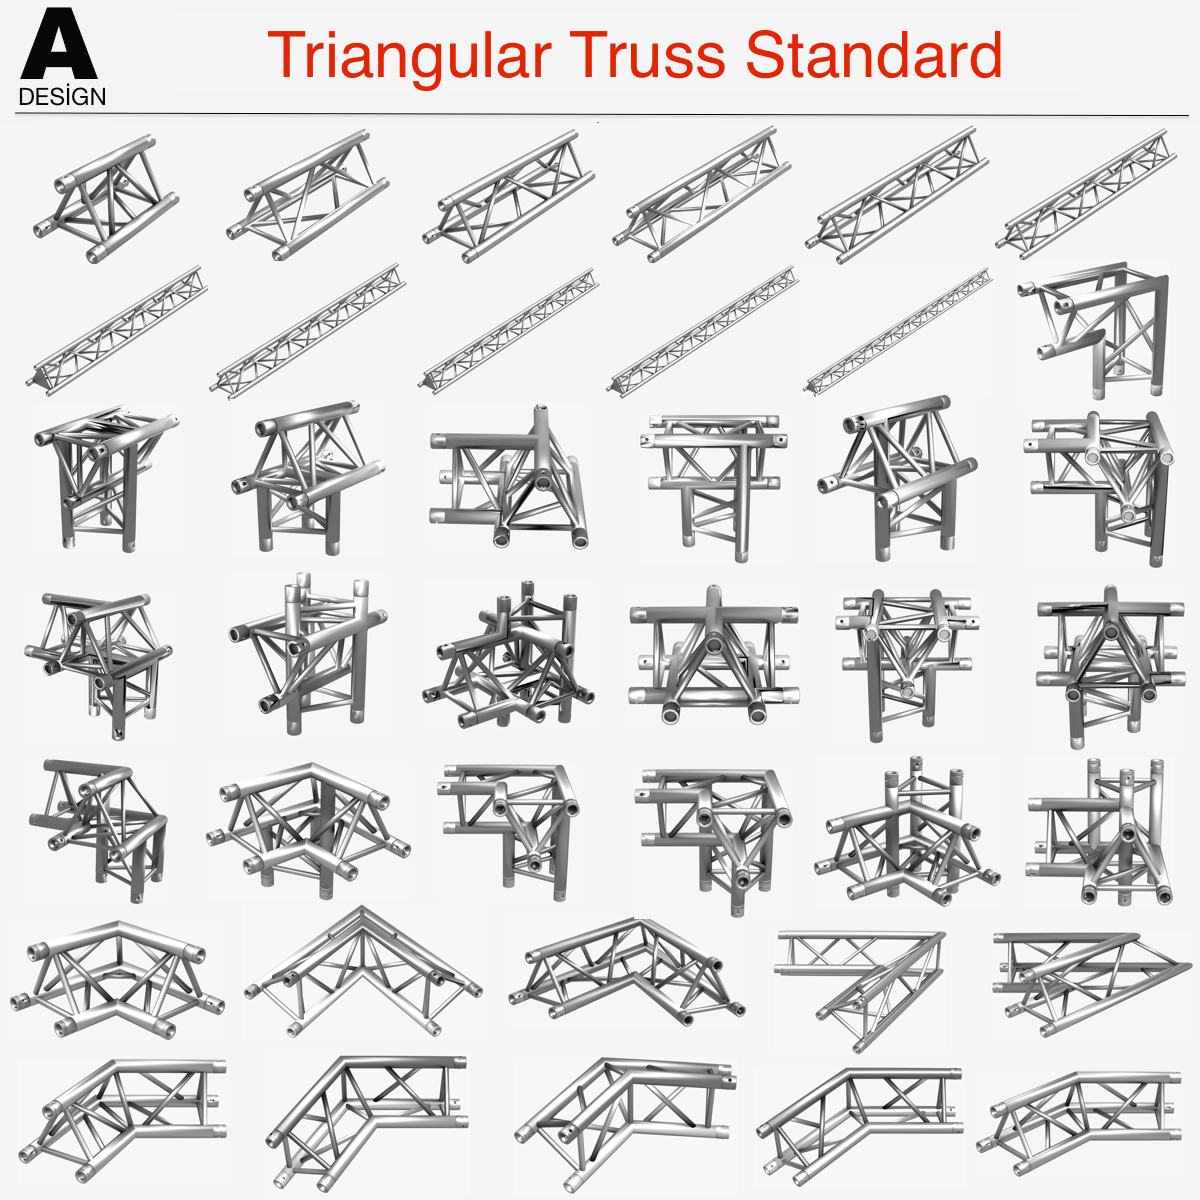 triangular truss standard (collection 41 modular) 3d model 3ds max dxf fbx c4d dae other  obj 268565